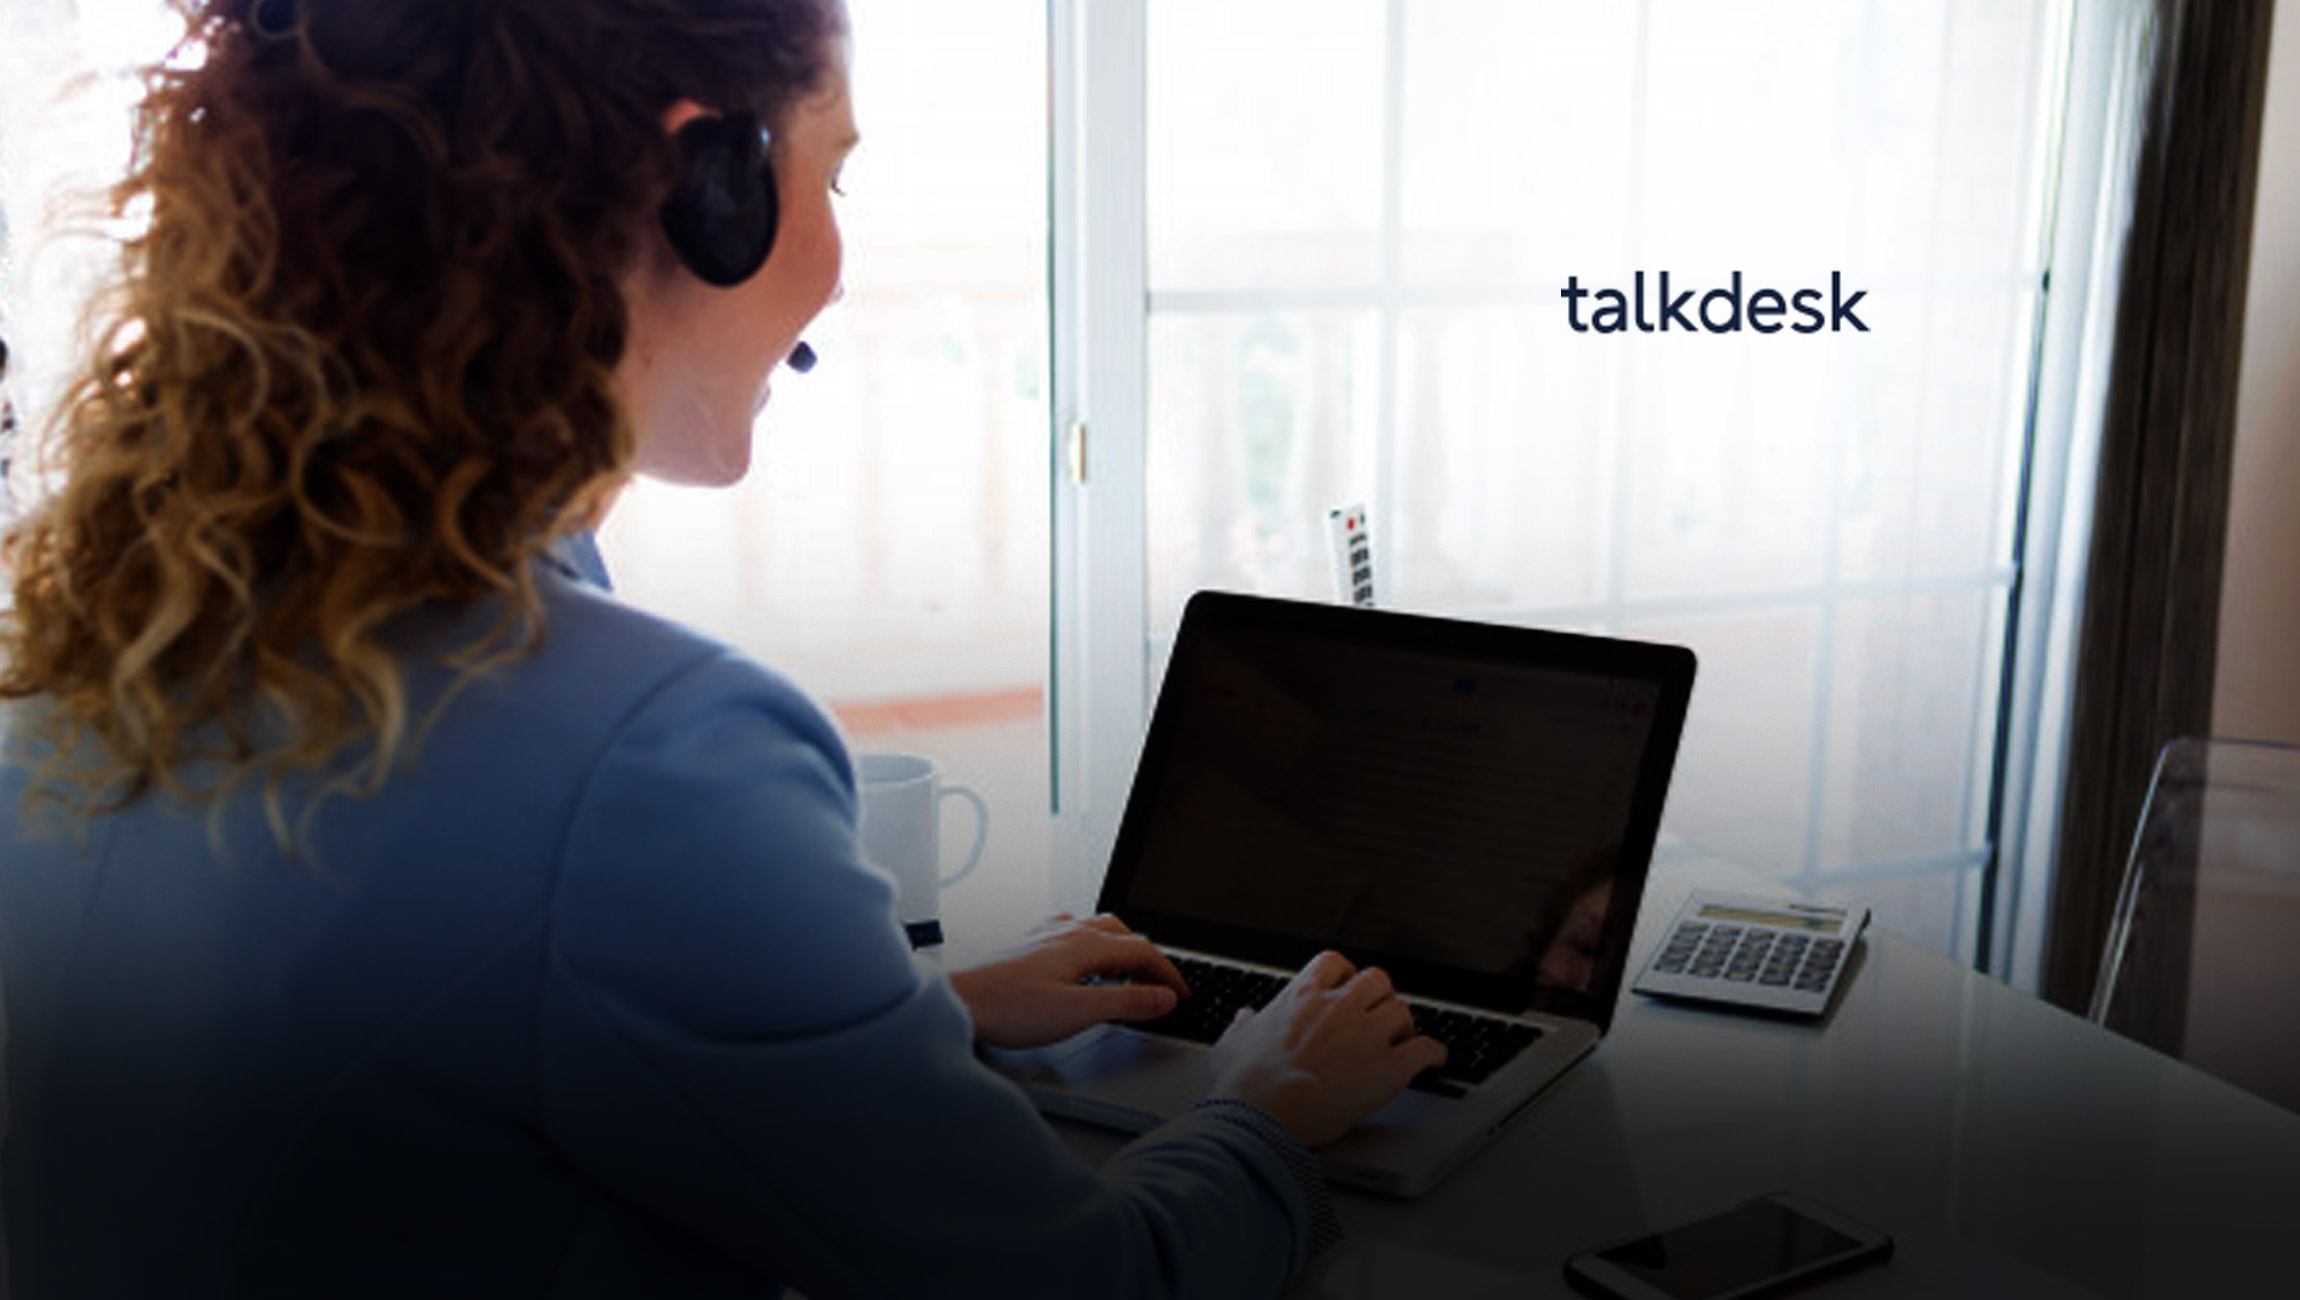 Talkdesk Broadens Machine Learning Capabilities With Amazon Web Services Contact Center Intelligence